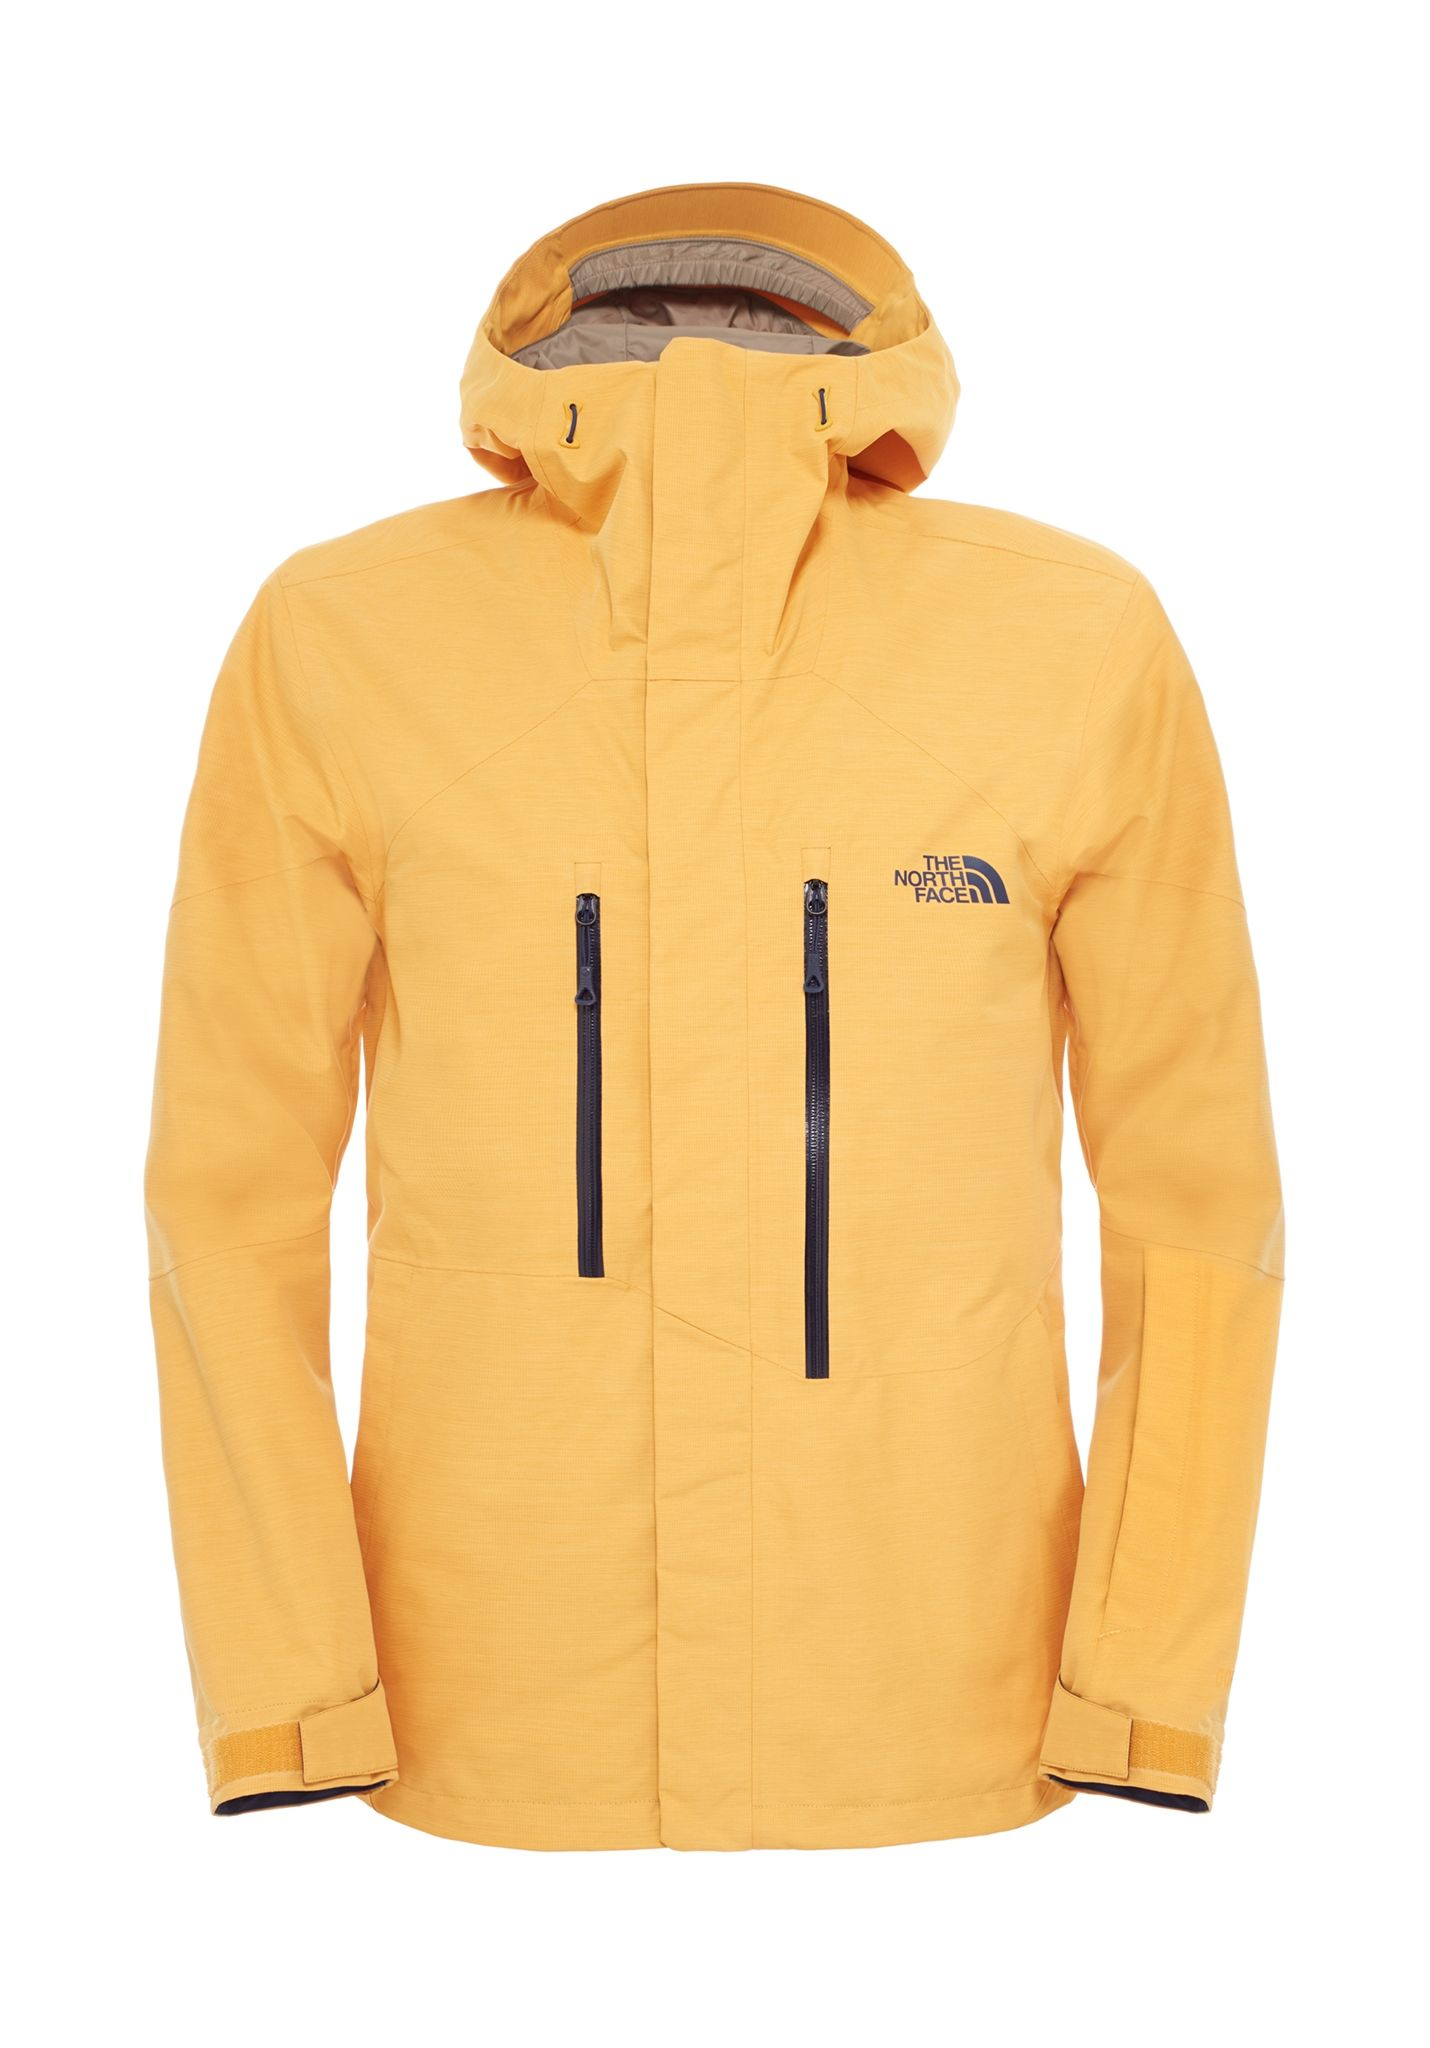 Planet Uomo Sports FACE THE NFZ NORTH Giallo snowboard per Giacca q7p8wY